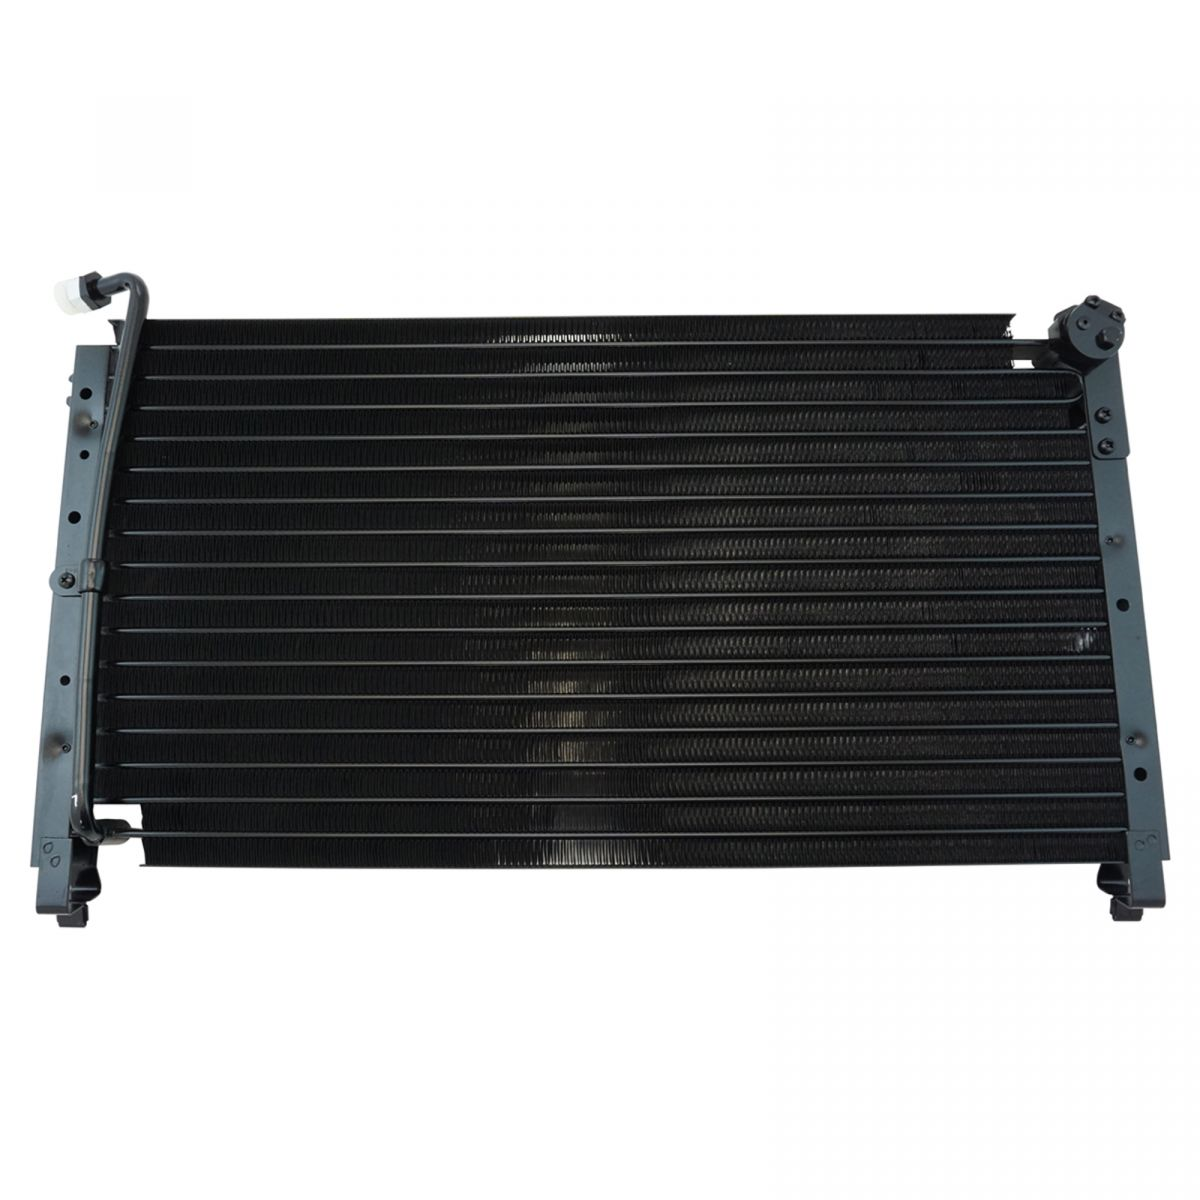 A//C Condenser Replacement For 93-97 Nissan D21 Pickup 93-95 Pathfinder NI3030115